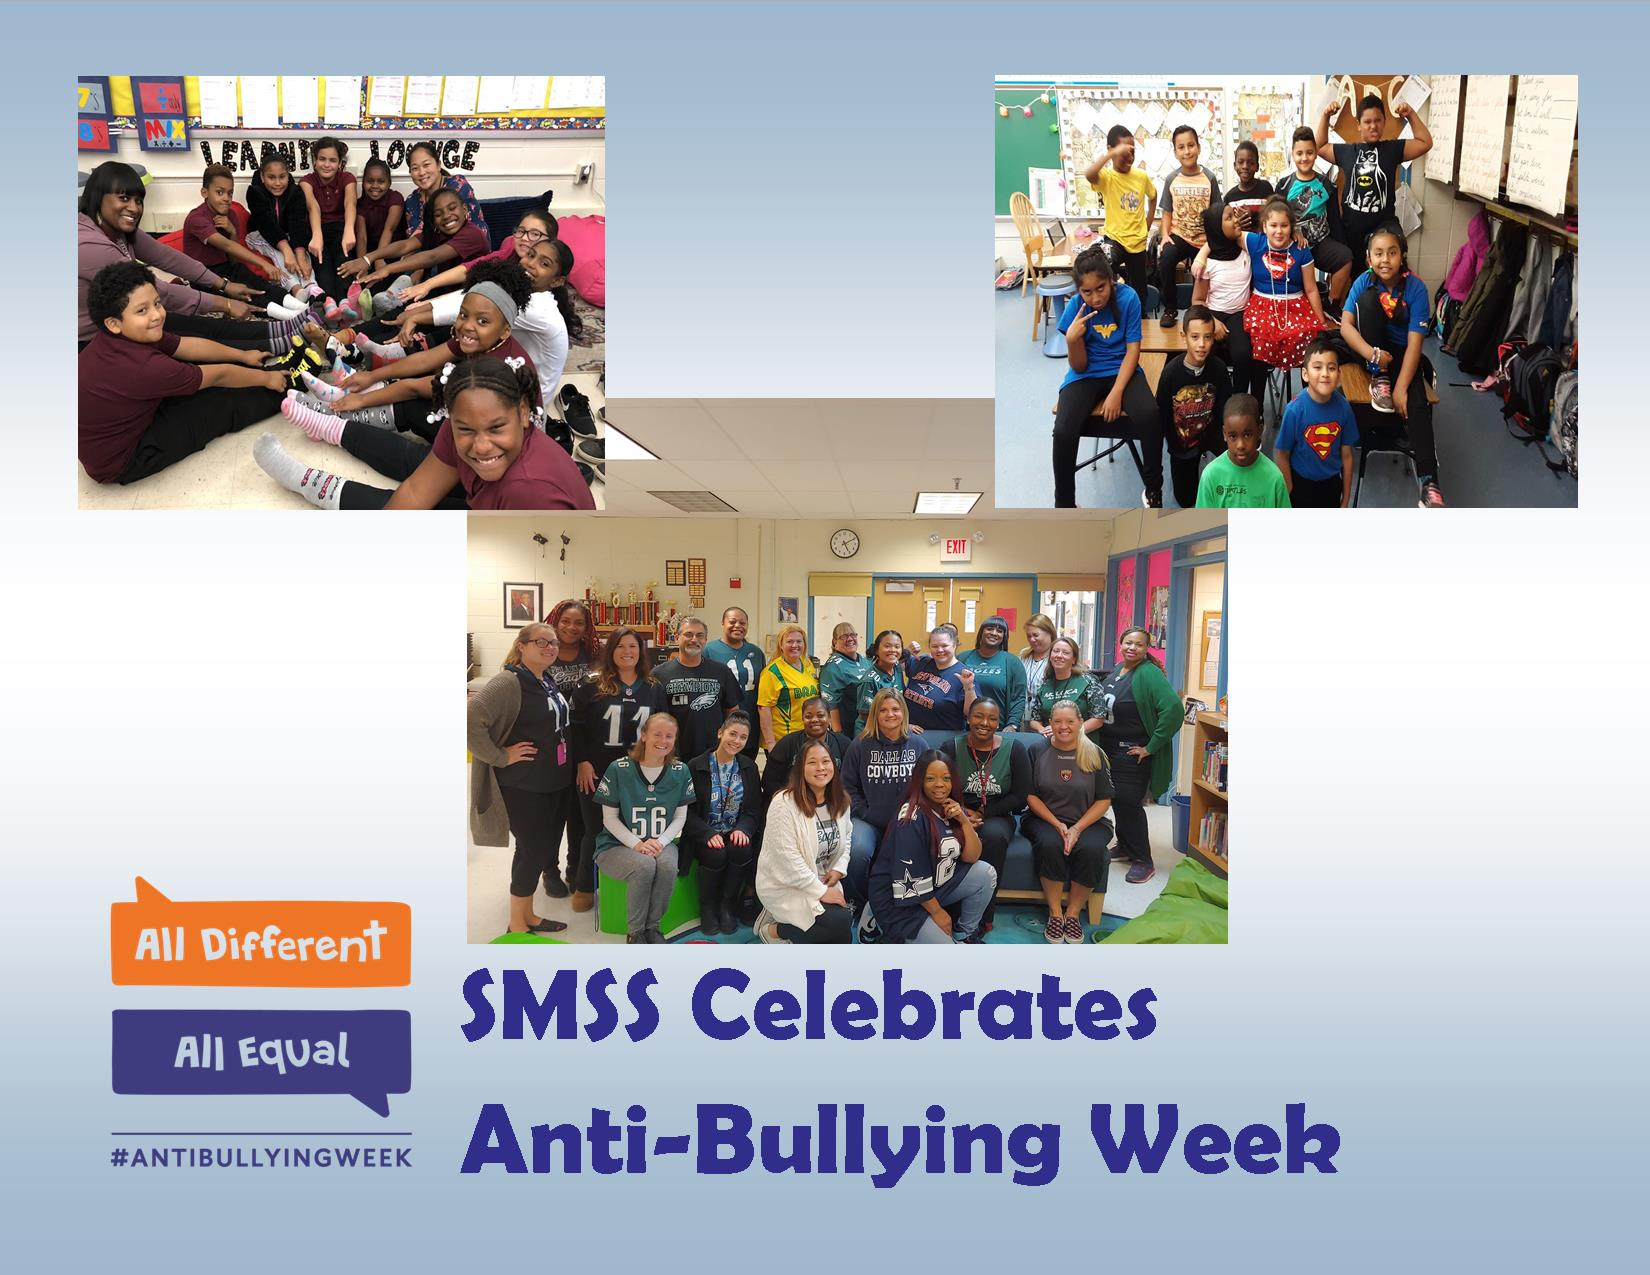 All Different All Equal #ANTIBULLYINGWEEK SMSS Celebrates Anti Bullying Week